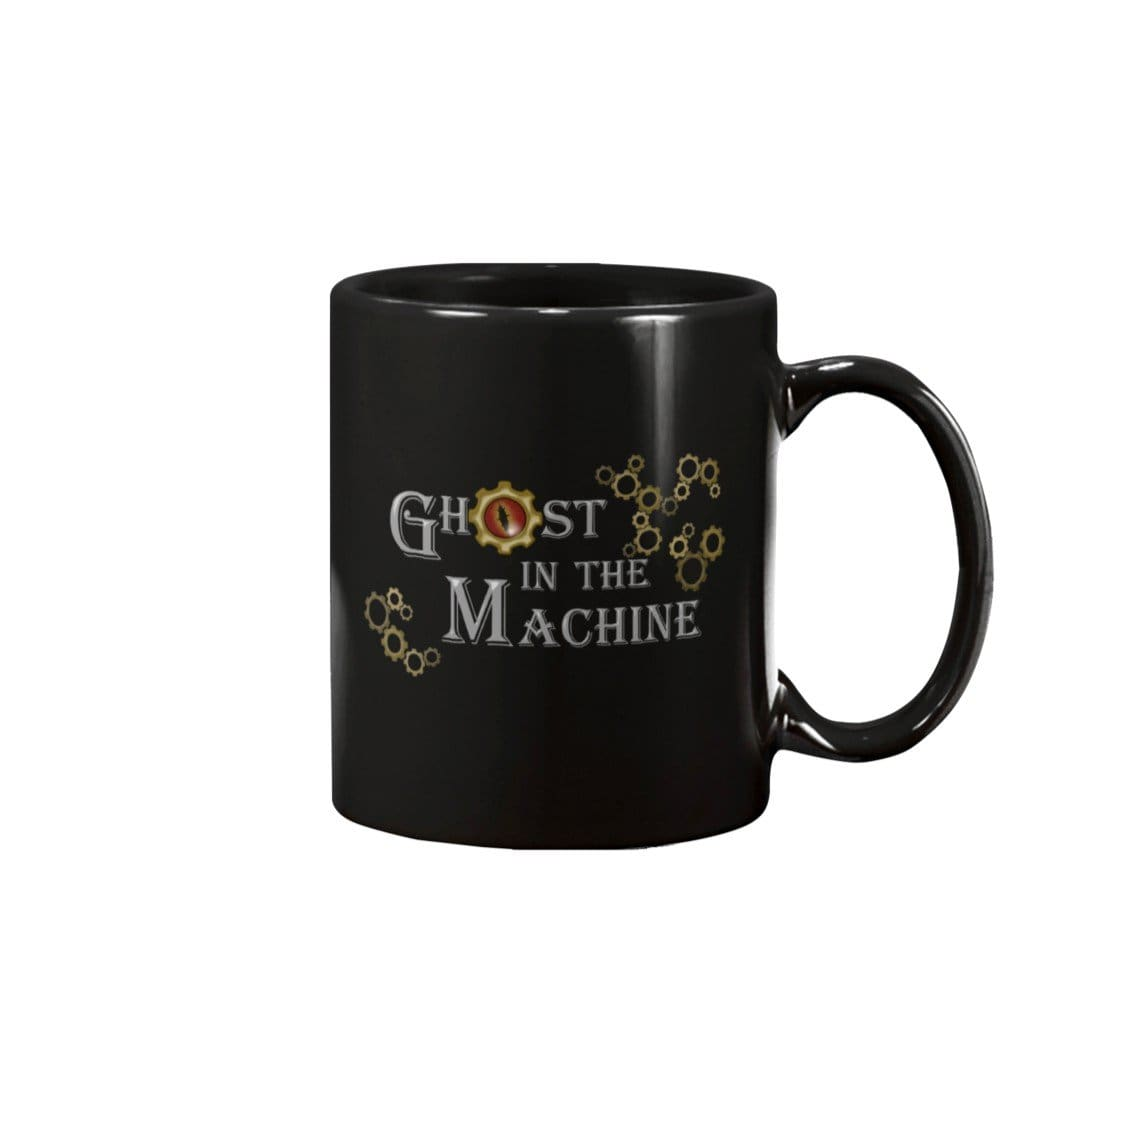 Dice Priori Ghost in the Machine Gears 15oz Coffee Mug - Black / 15OZ - Dice Priori